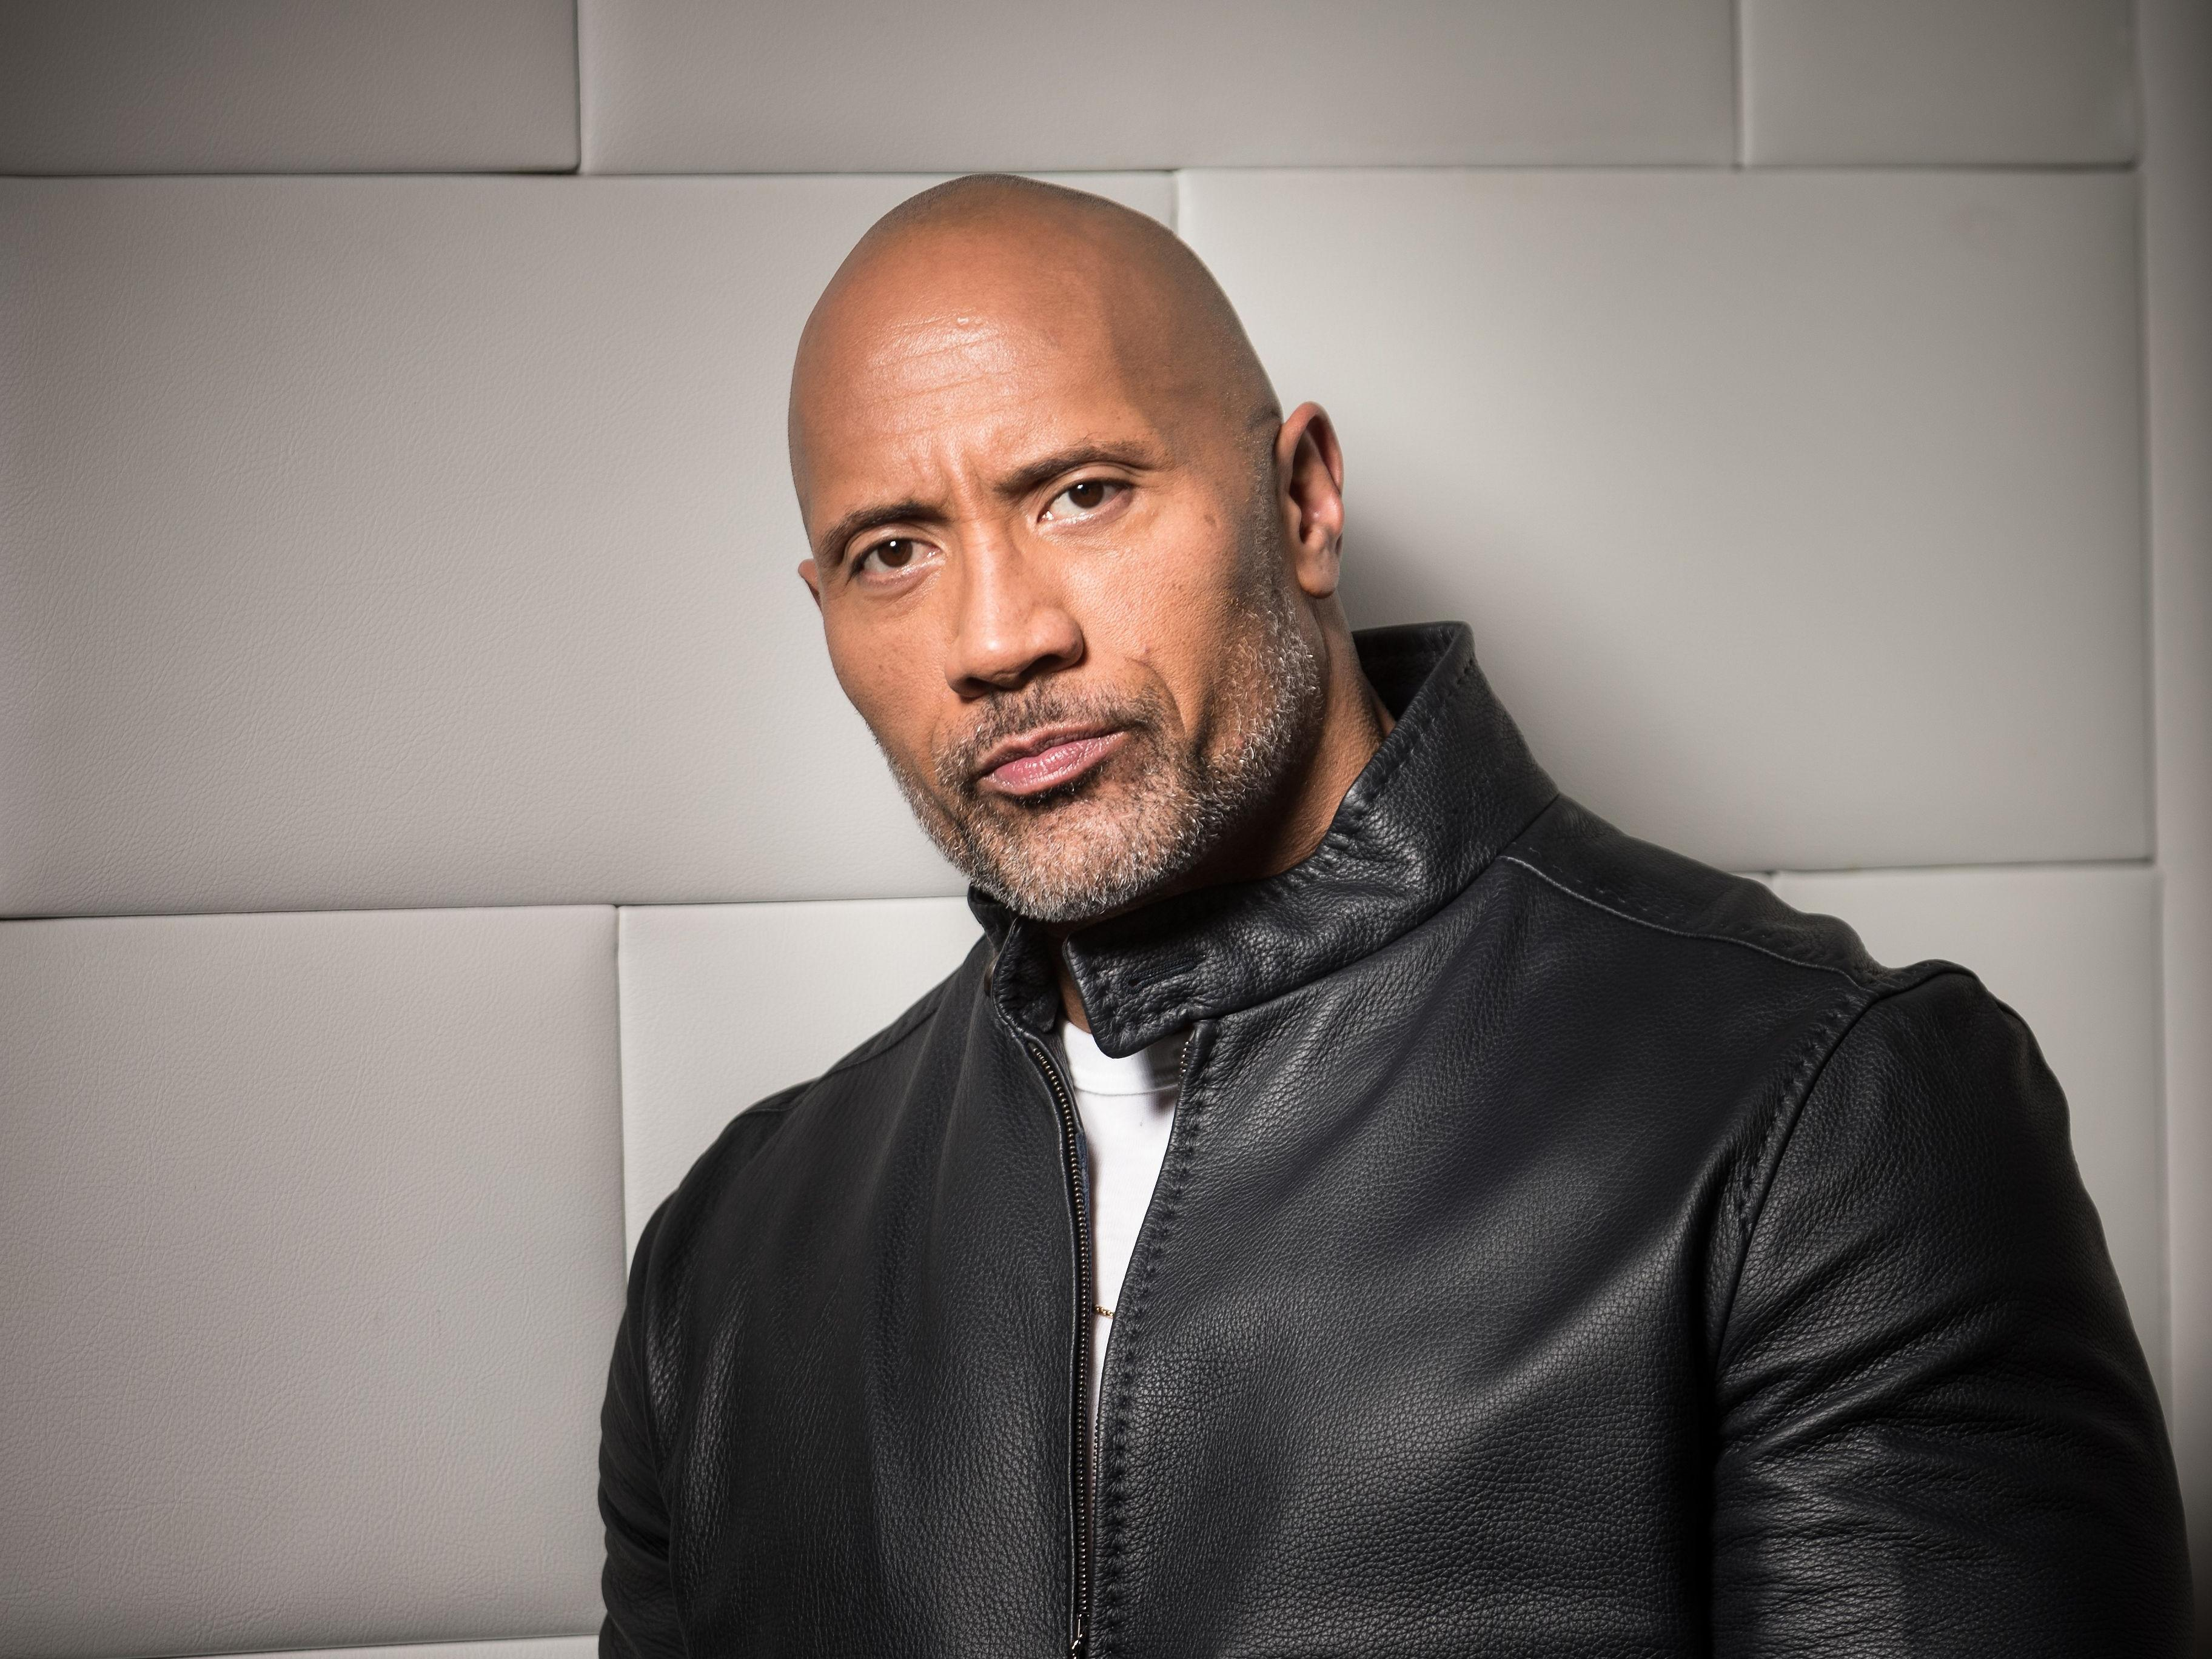 Dwayne Johnson 2017 4K, HD Celebrities, 4k Wallpapers, Image